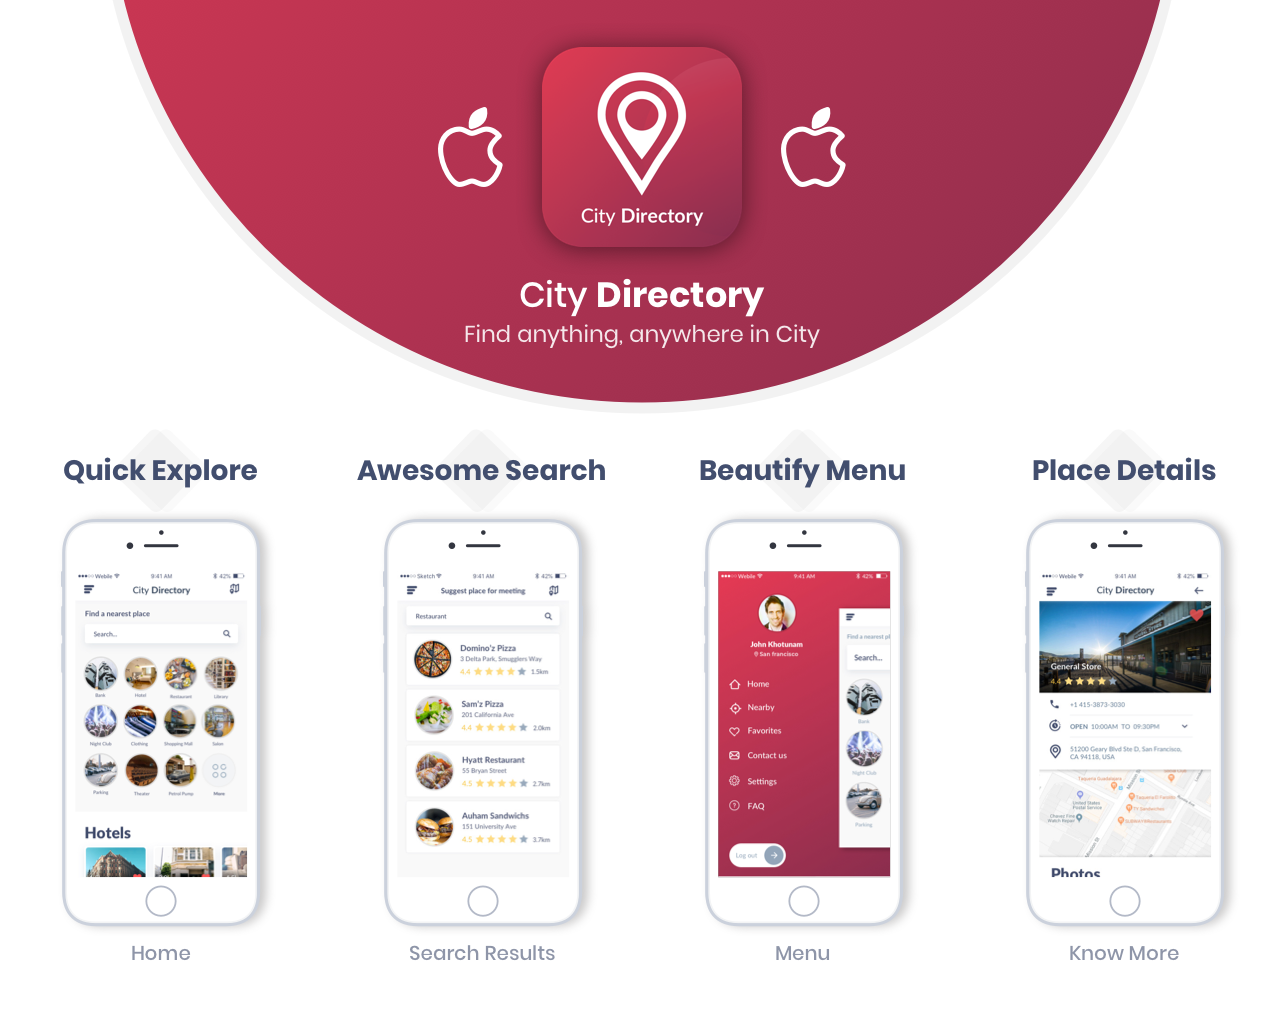 City Directory iOS Native App Source Code Free 2018